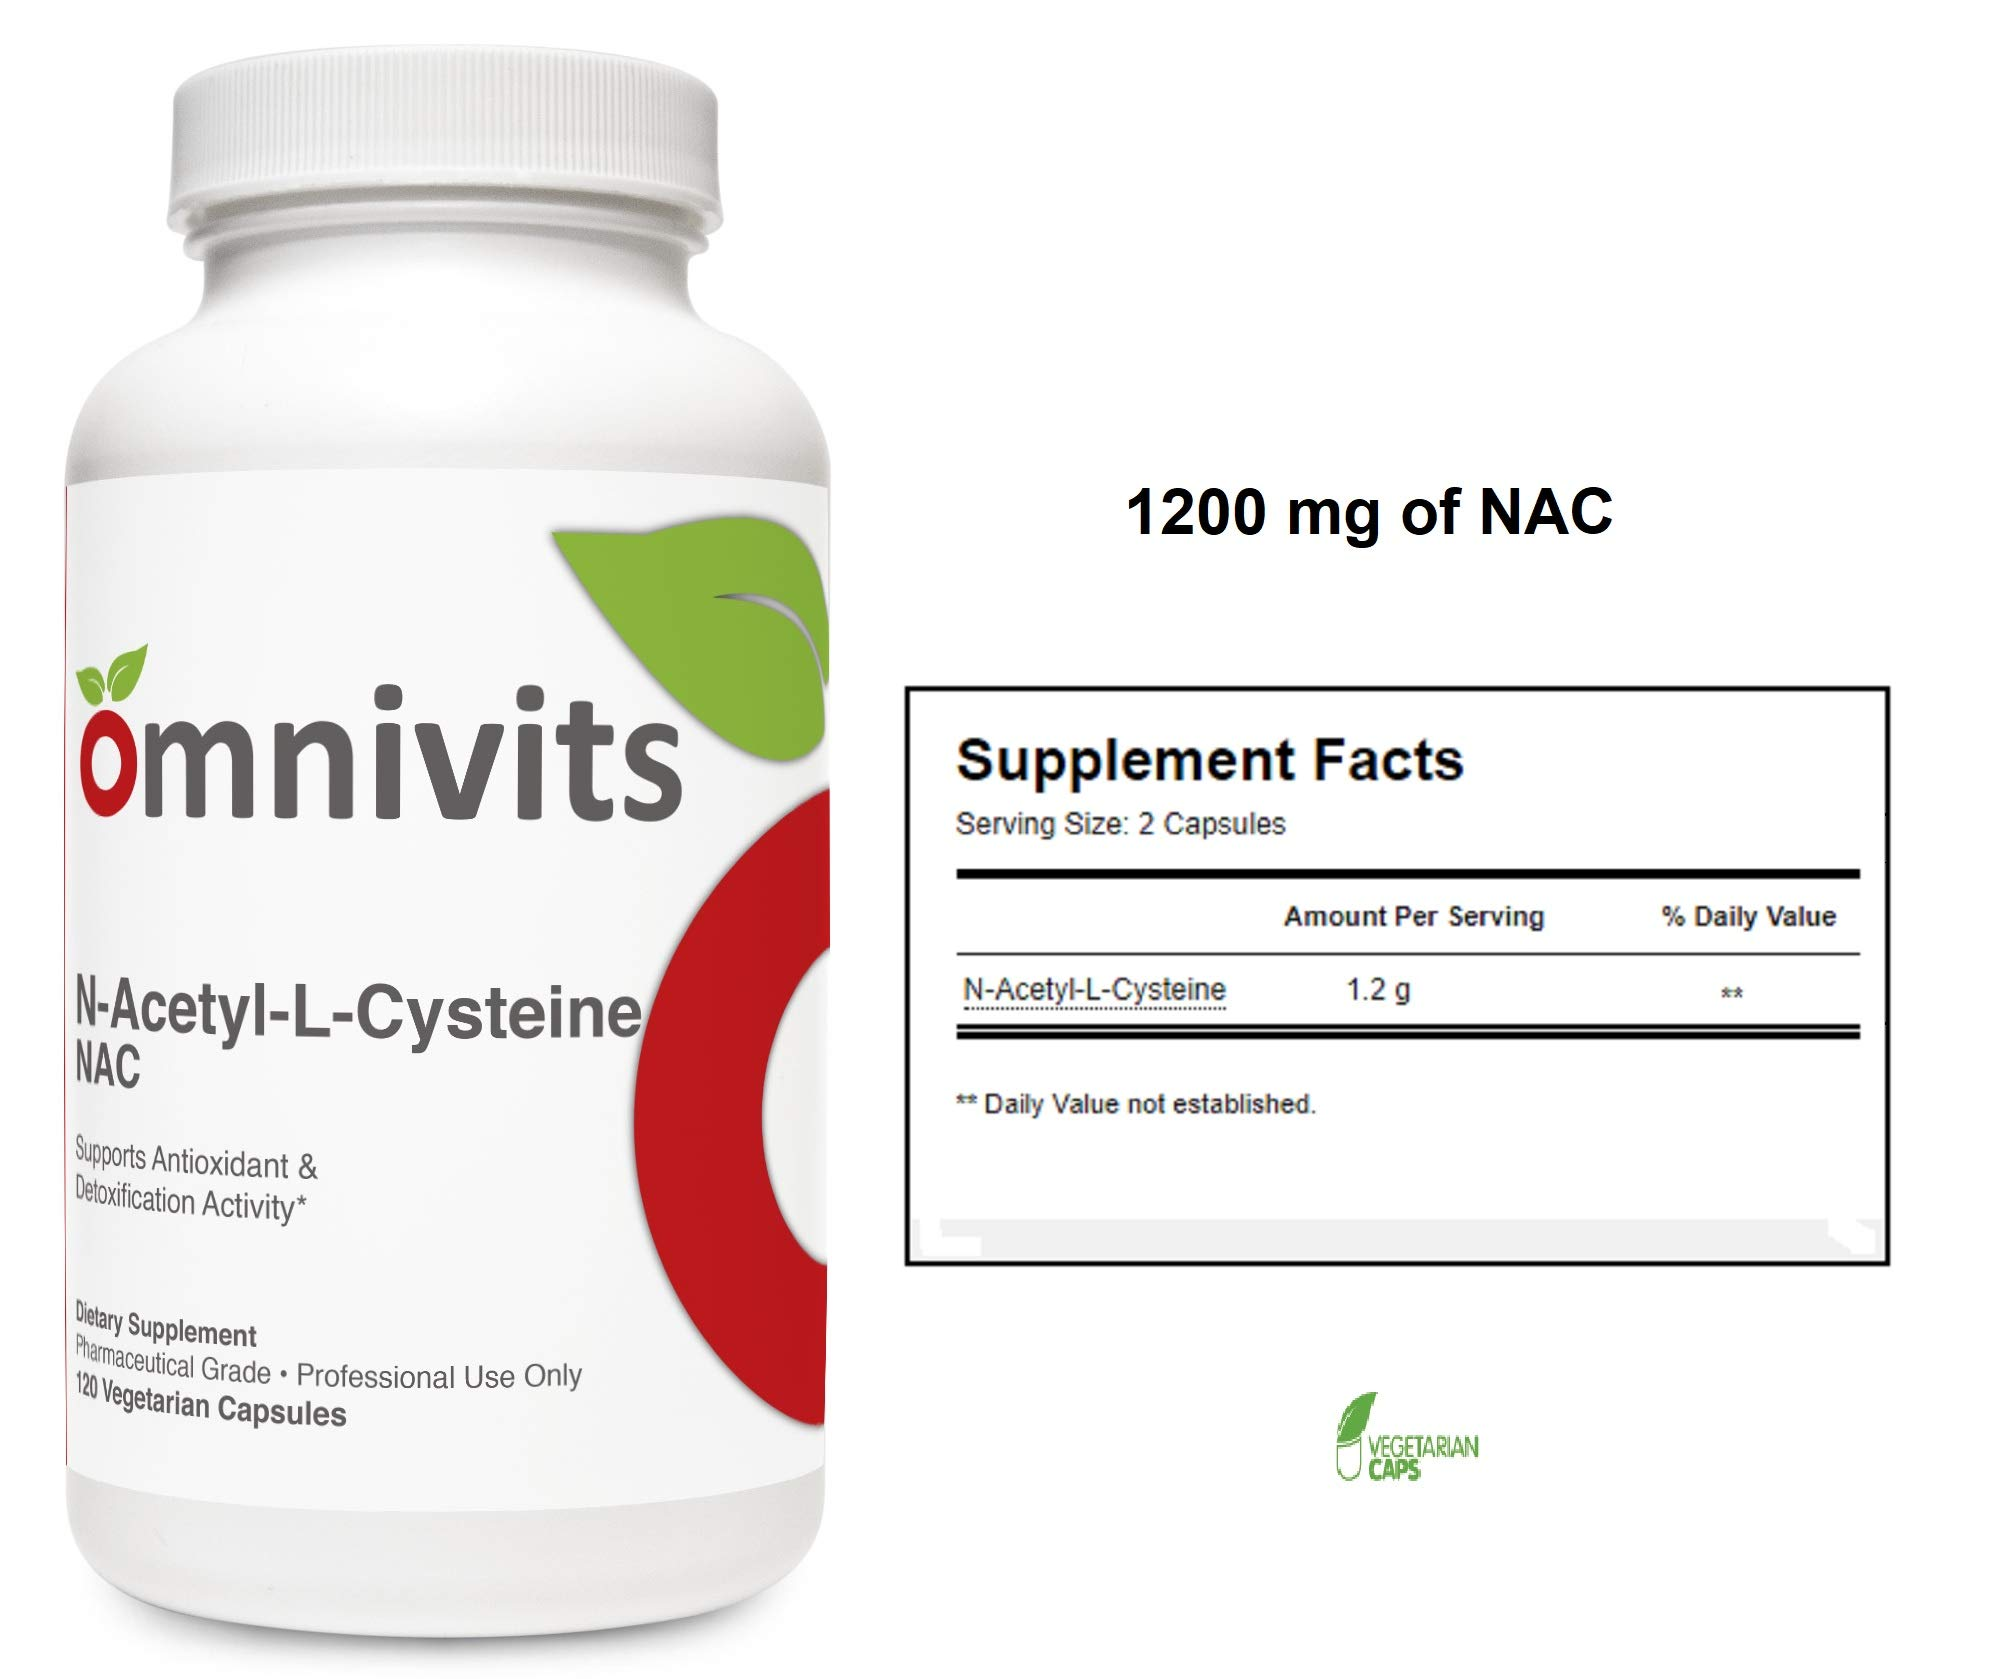 Omnivits N-Acetyl-L-Cysteine 1200mg | NAC Supplement | Supports Antioxidant & Detoxification Activity* | 120 Vegetarian Capsules